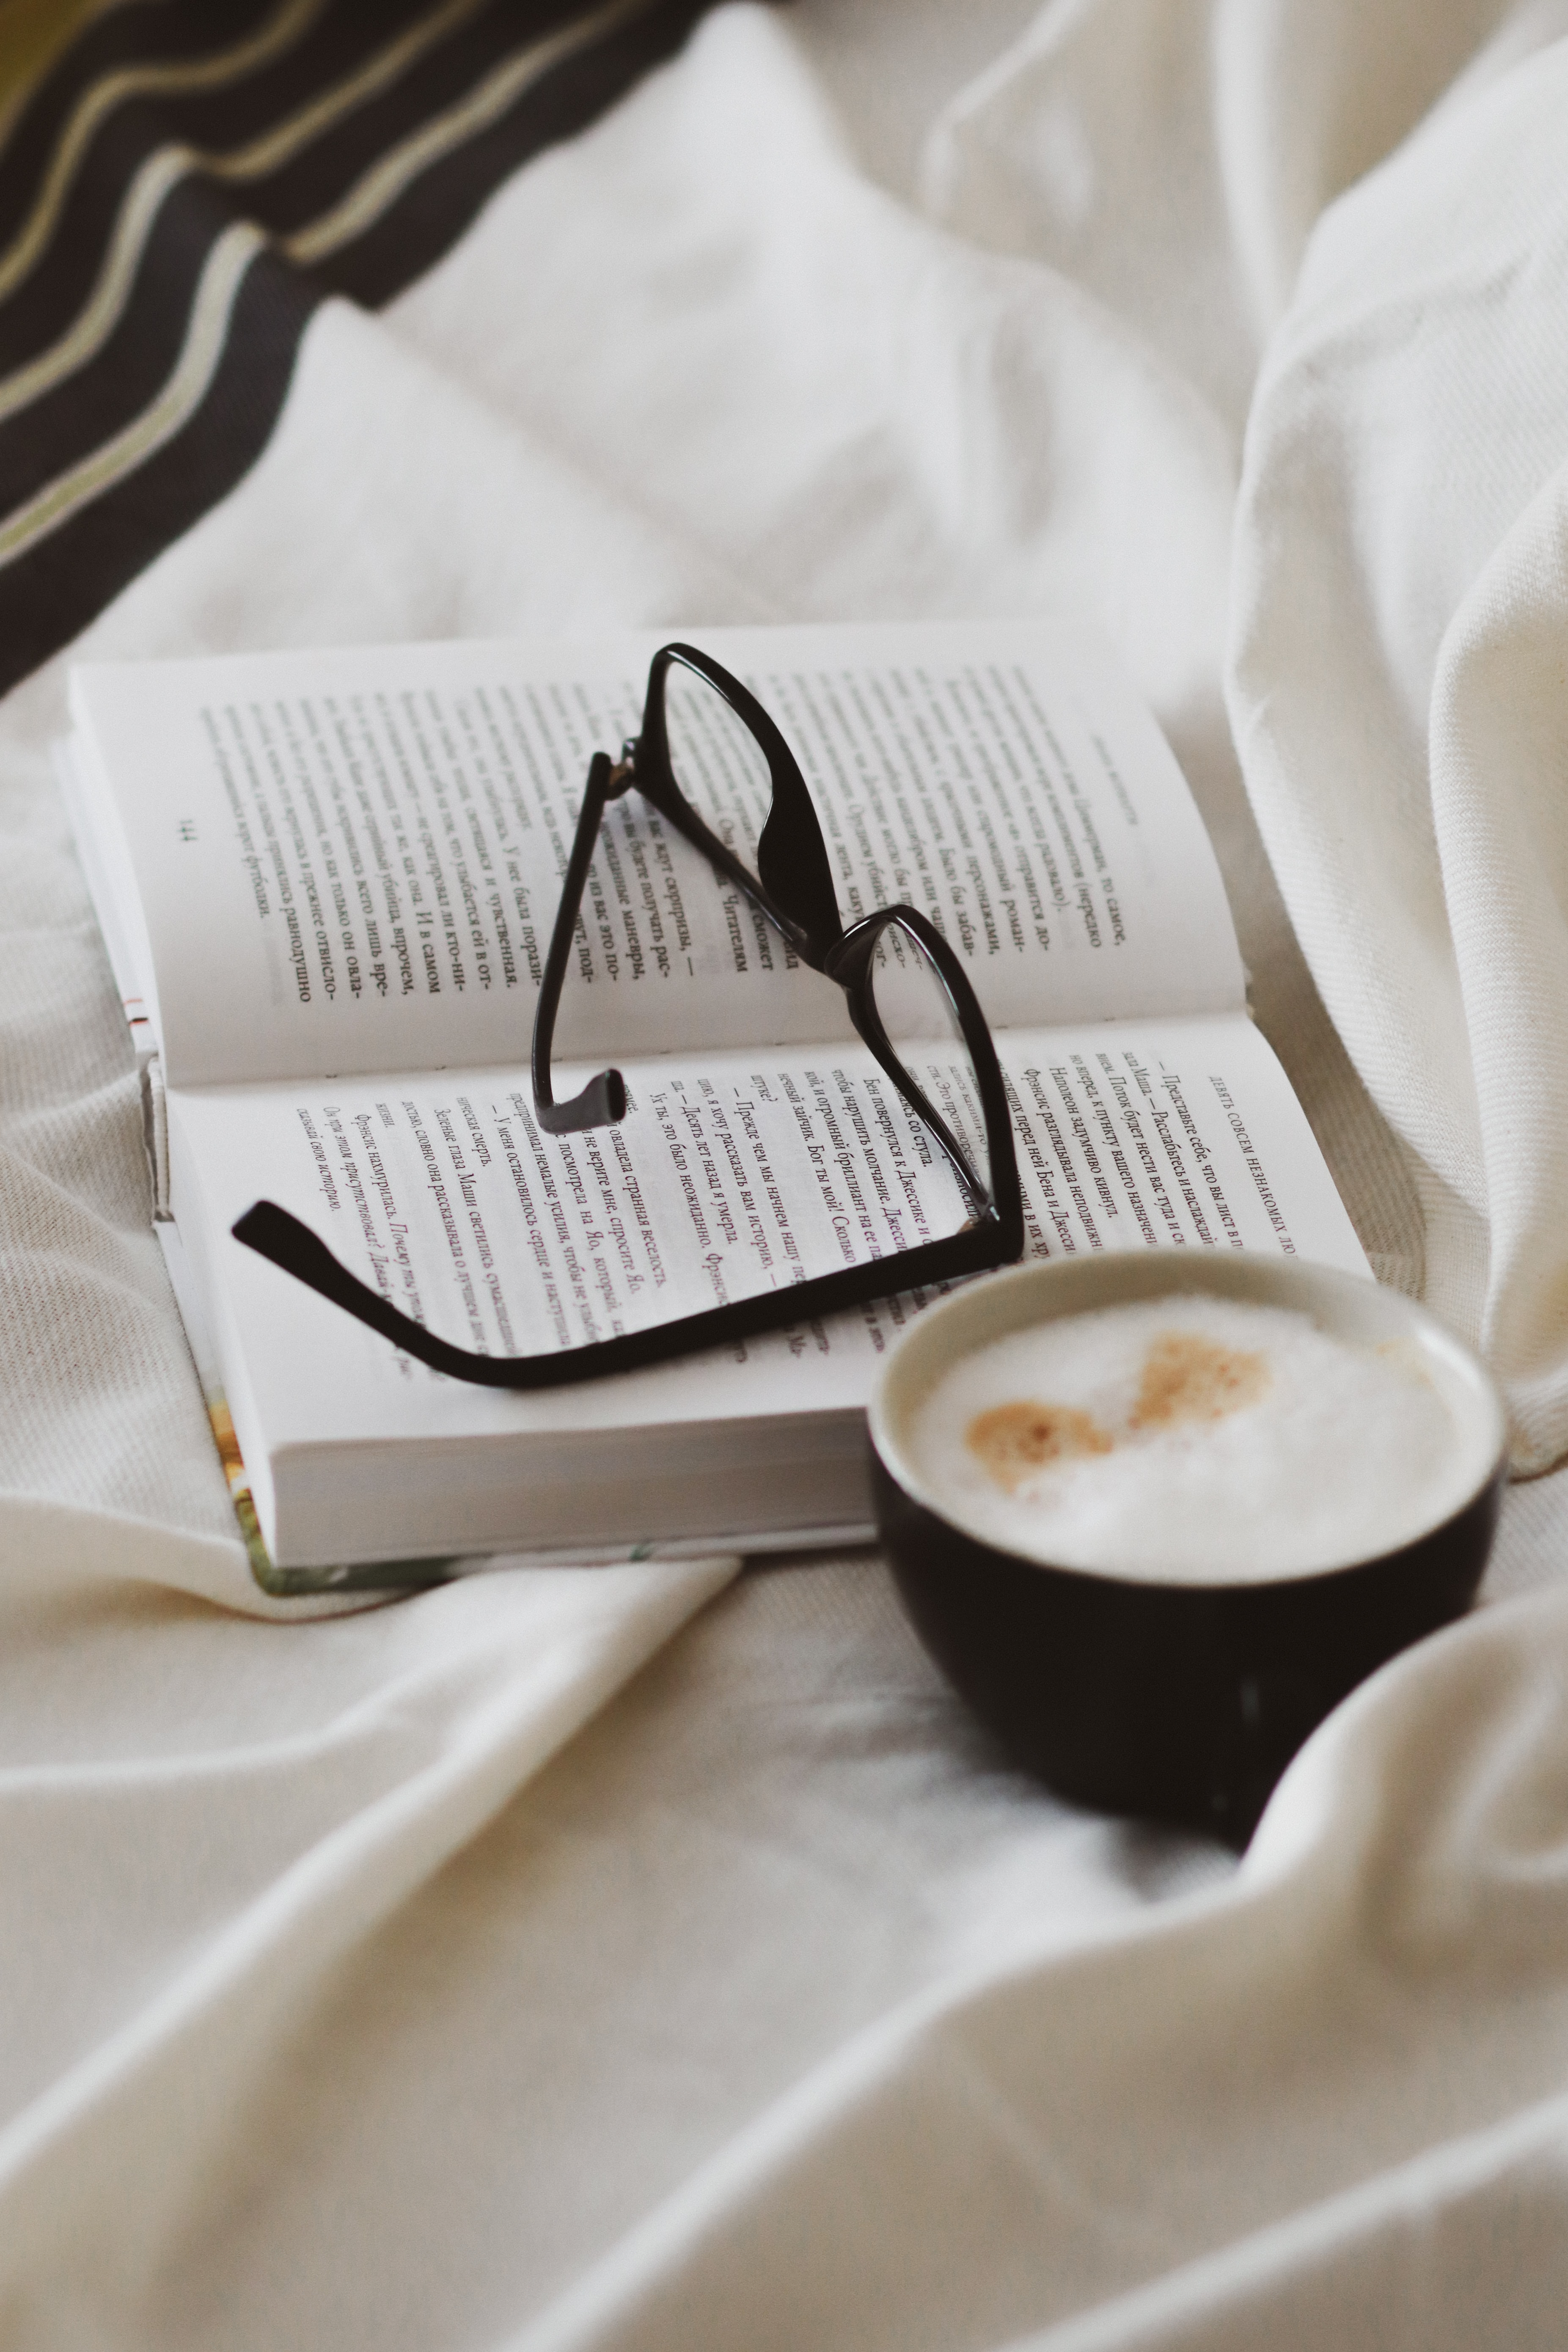 132148 download wallpaper Miscellanea, Miscellaneous, Book, Cup, Glasses, Spectacles screensavers and pictures for free